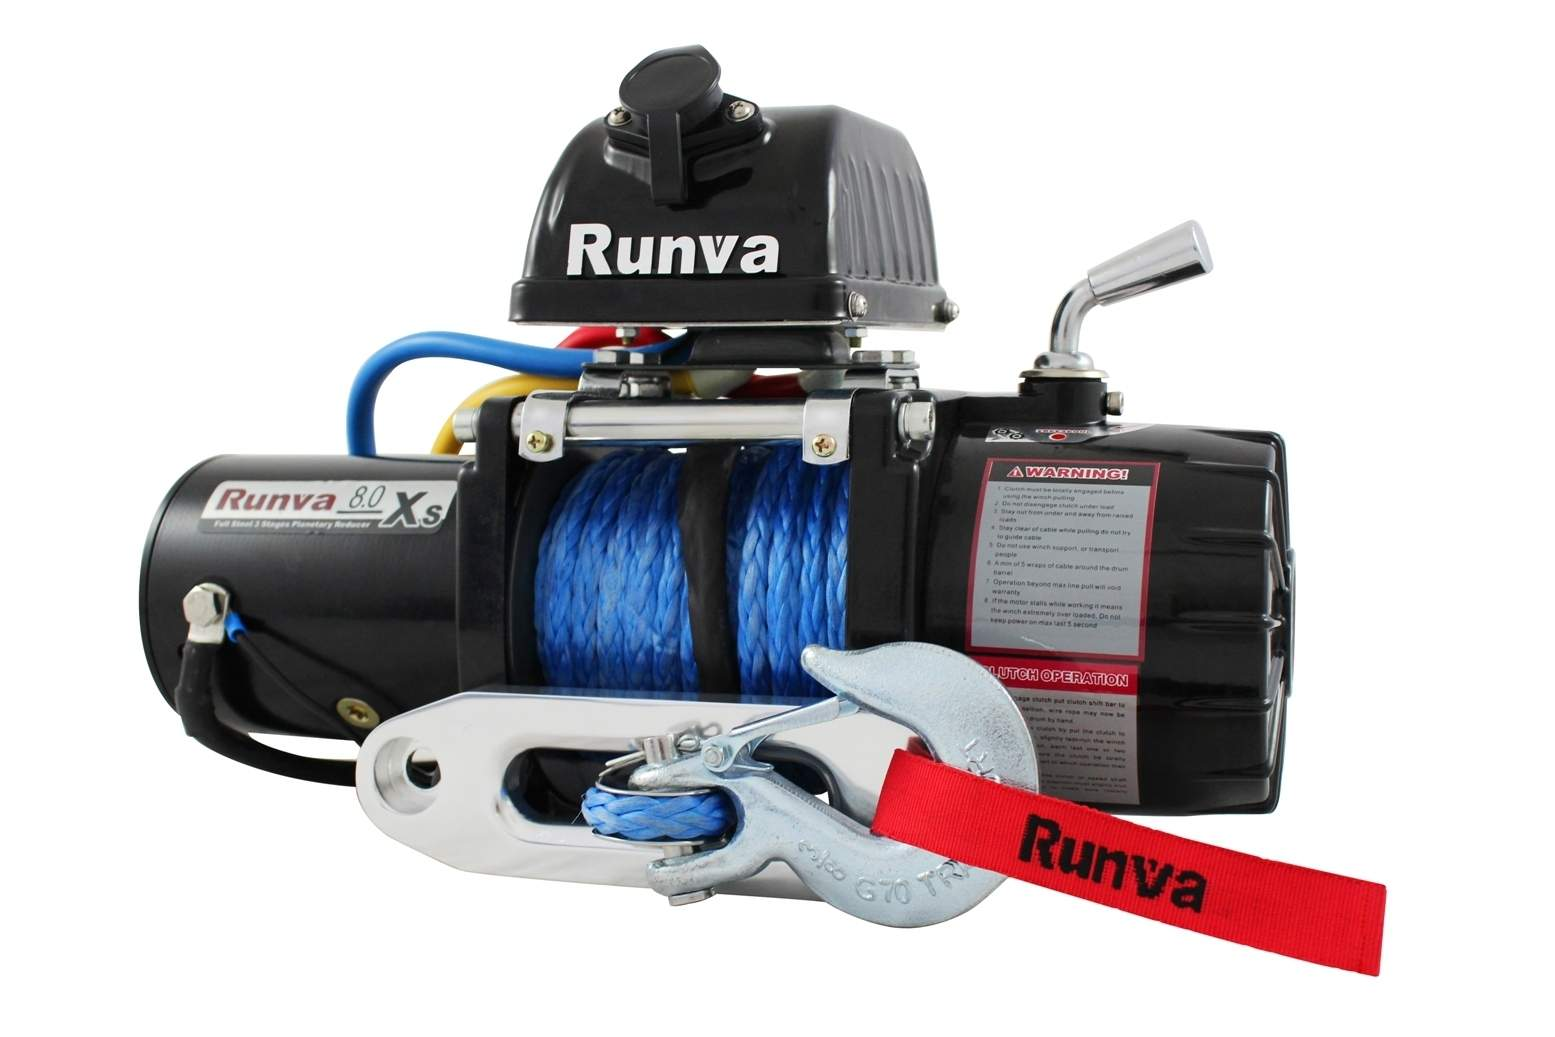 Runva 8 0XS Rock Crawl Winch 8000lb Electric 4wd winch with 14m of 9mm  synthetic rope